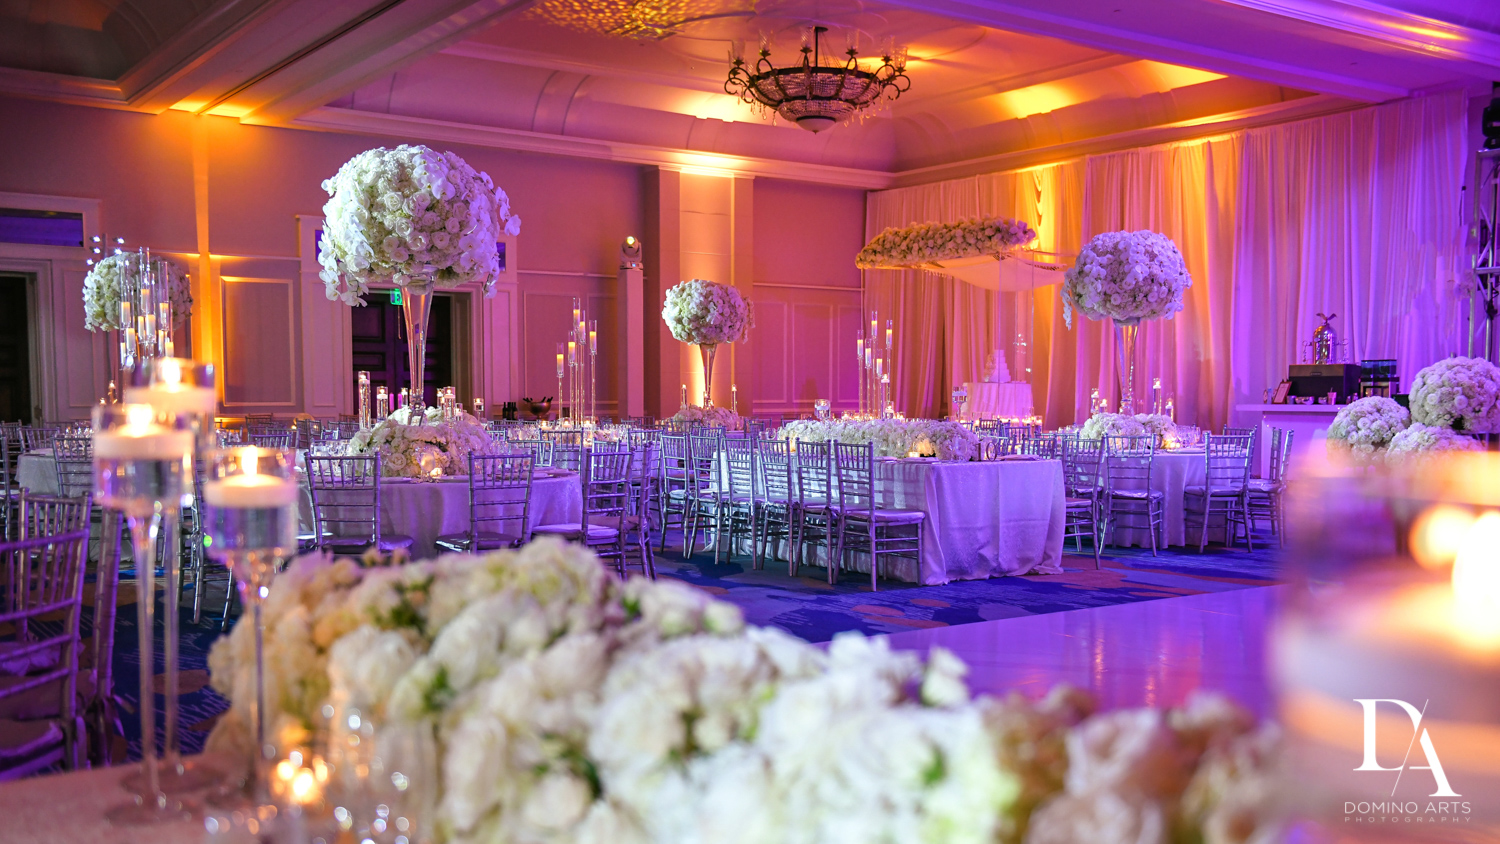 white and purple decor at A Ritz Carlton Wedding in Key Biscayne by Domino Arts Photography